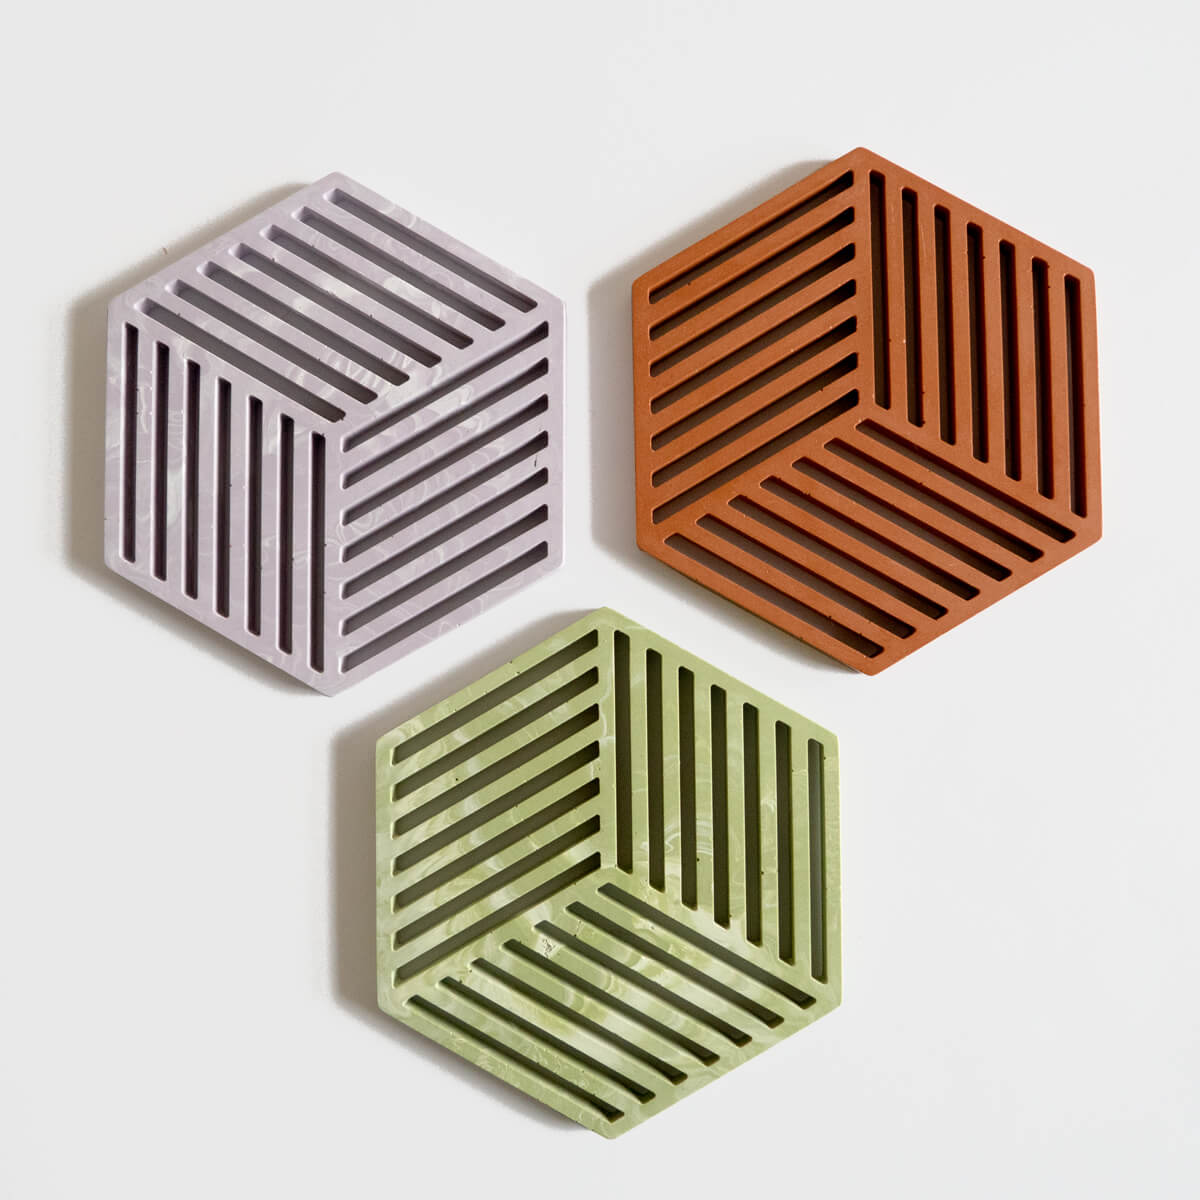 A group of 3 hexagonal jesmonite trivets in lilac, sage and terracotta handmade by Klndra for Curious Makers.